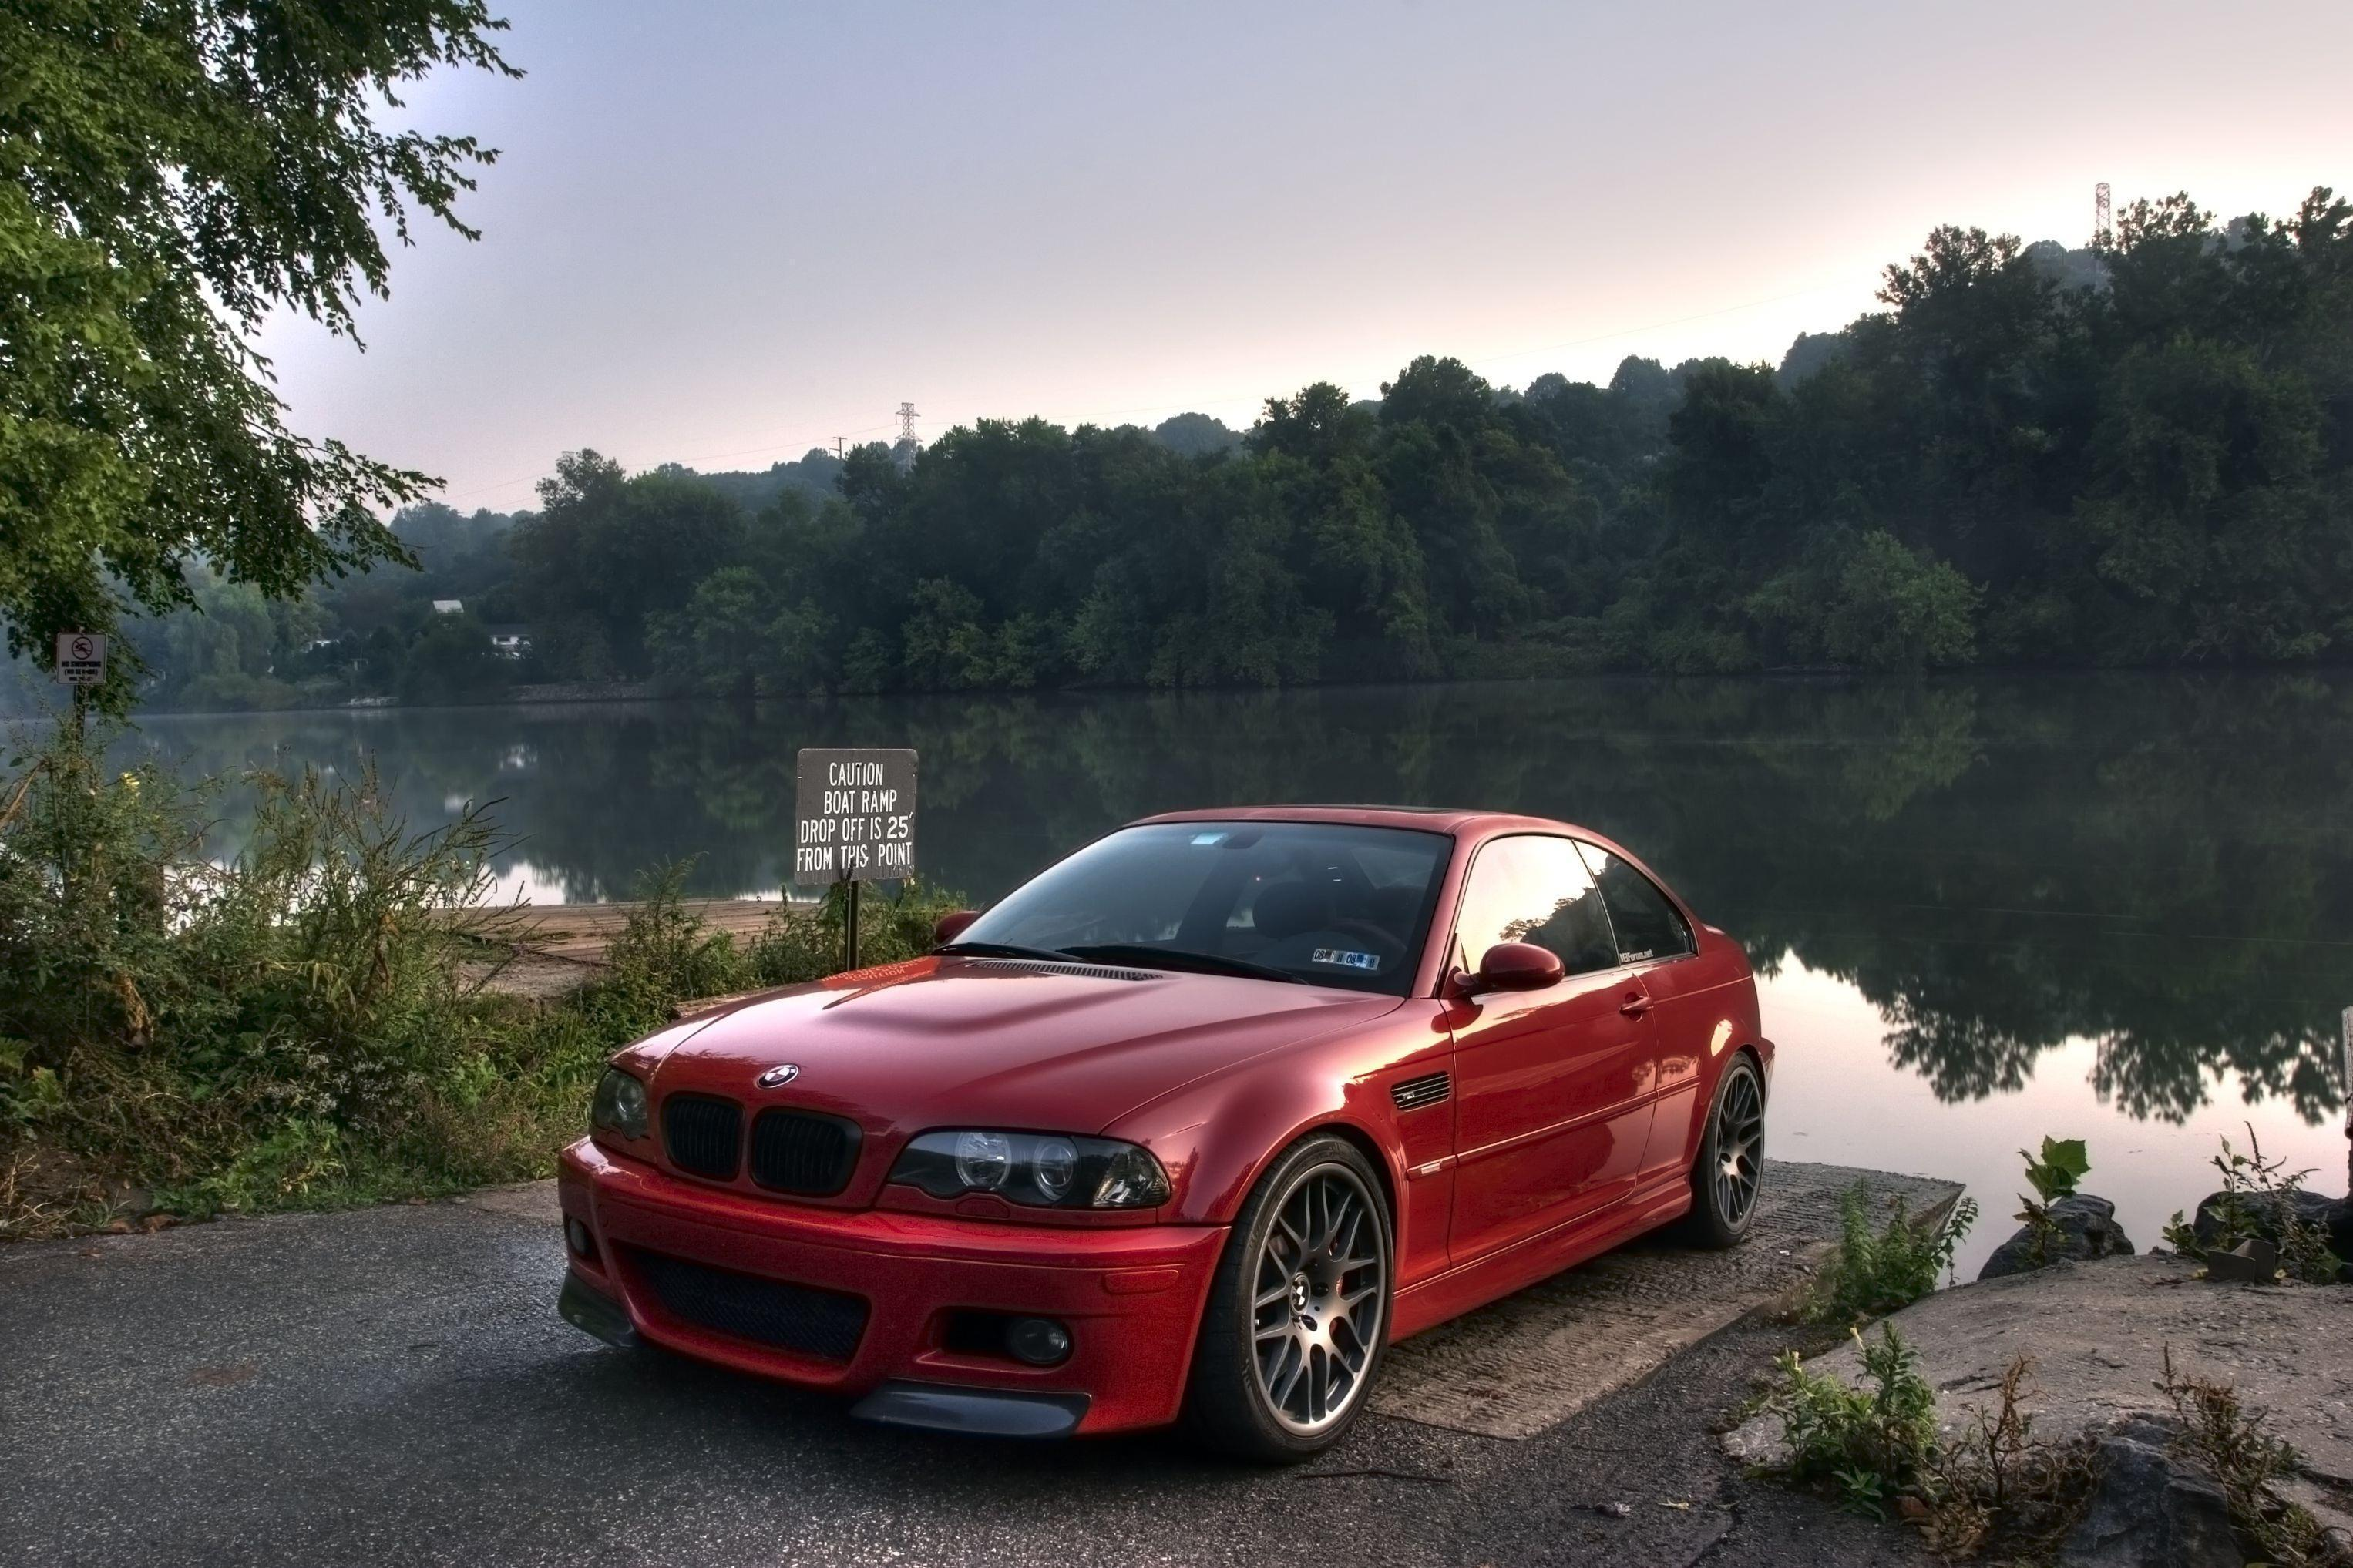 E46 Wallpapers - Wallpaper Cave